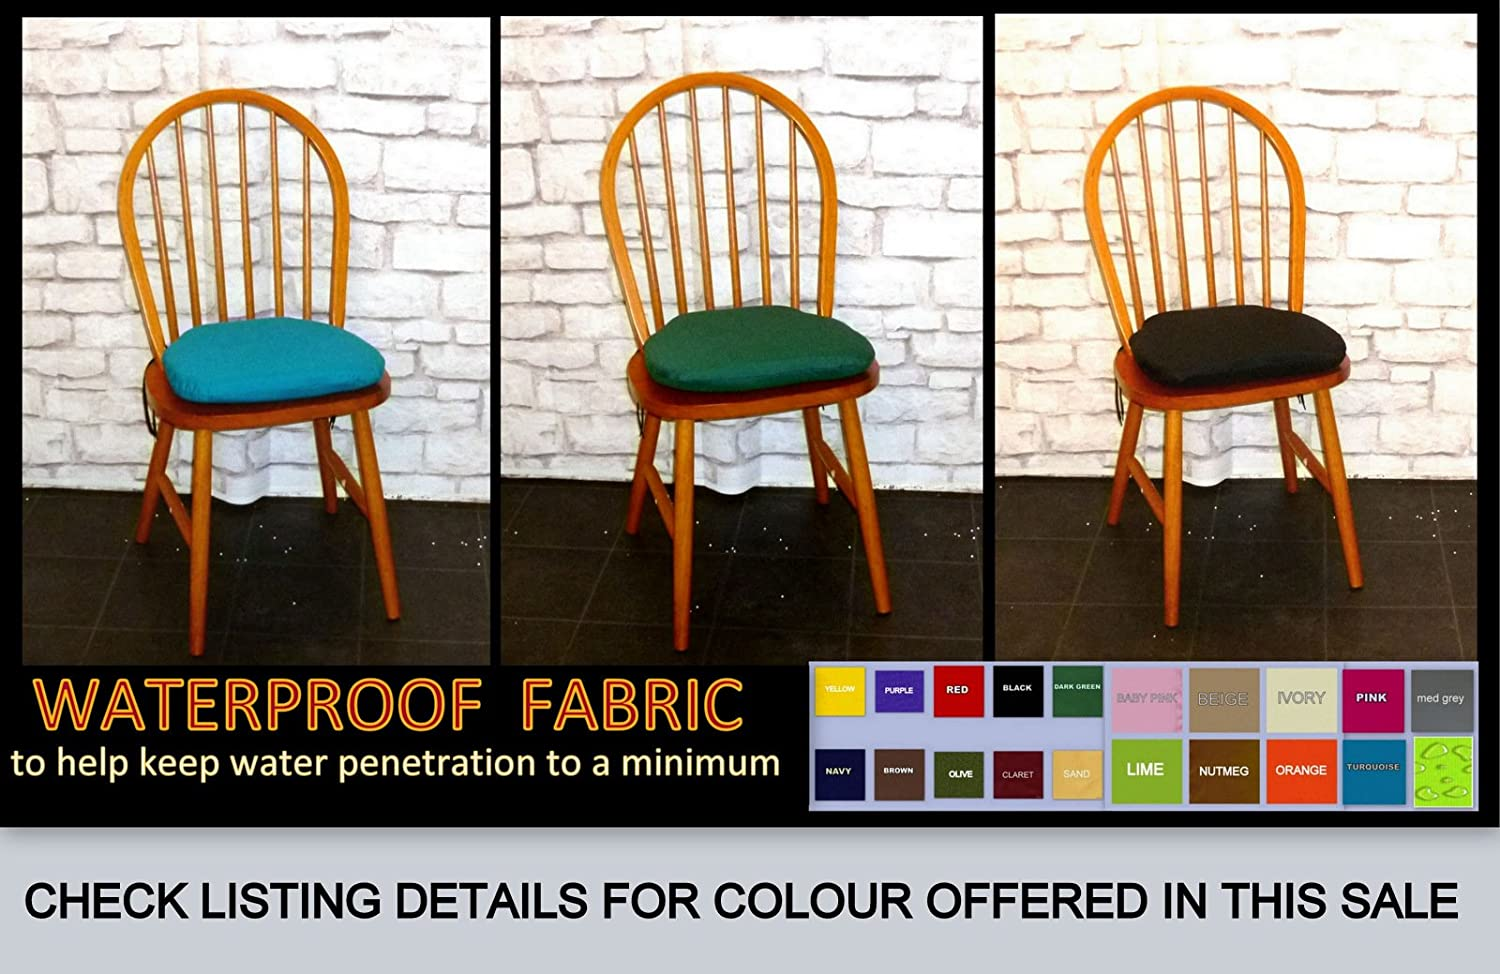 2 x YELLOW - Zippy Spindle Chair Cushions - Waterproof Fabric - Small Dining Chair Seat Pads - 38cms x 37cms - For Home & Garden Furniture Zippy UK